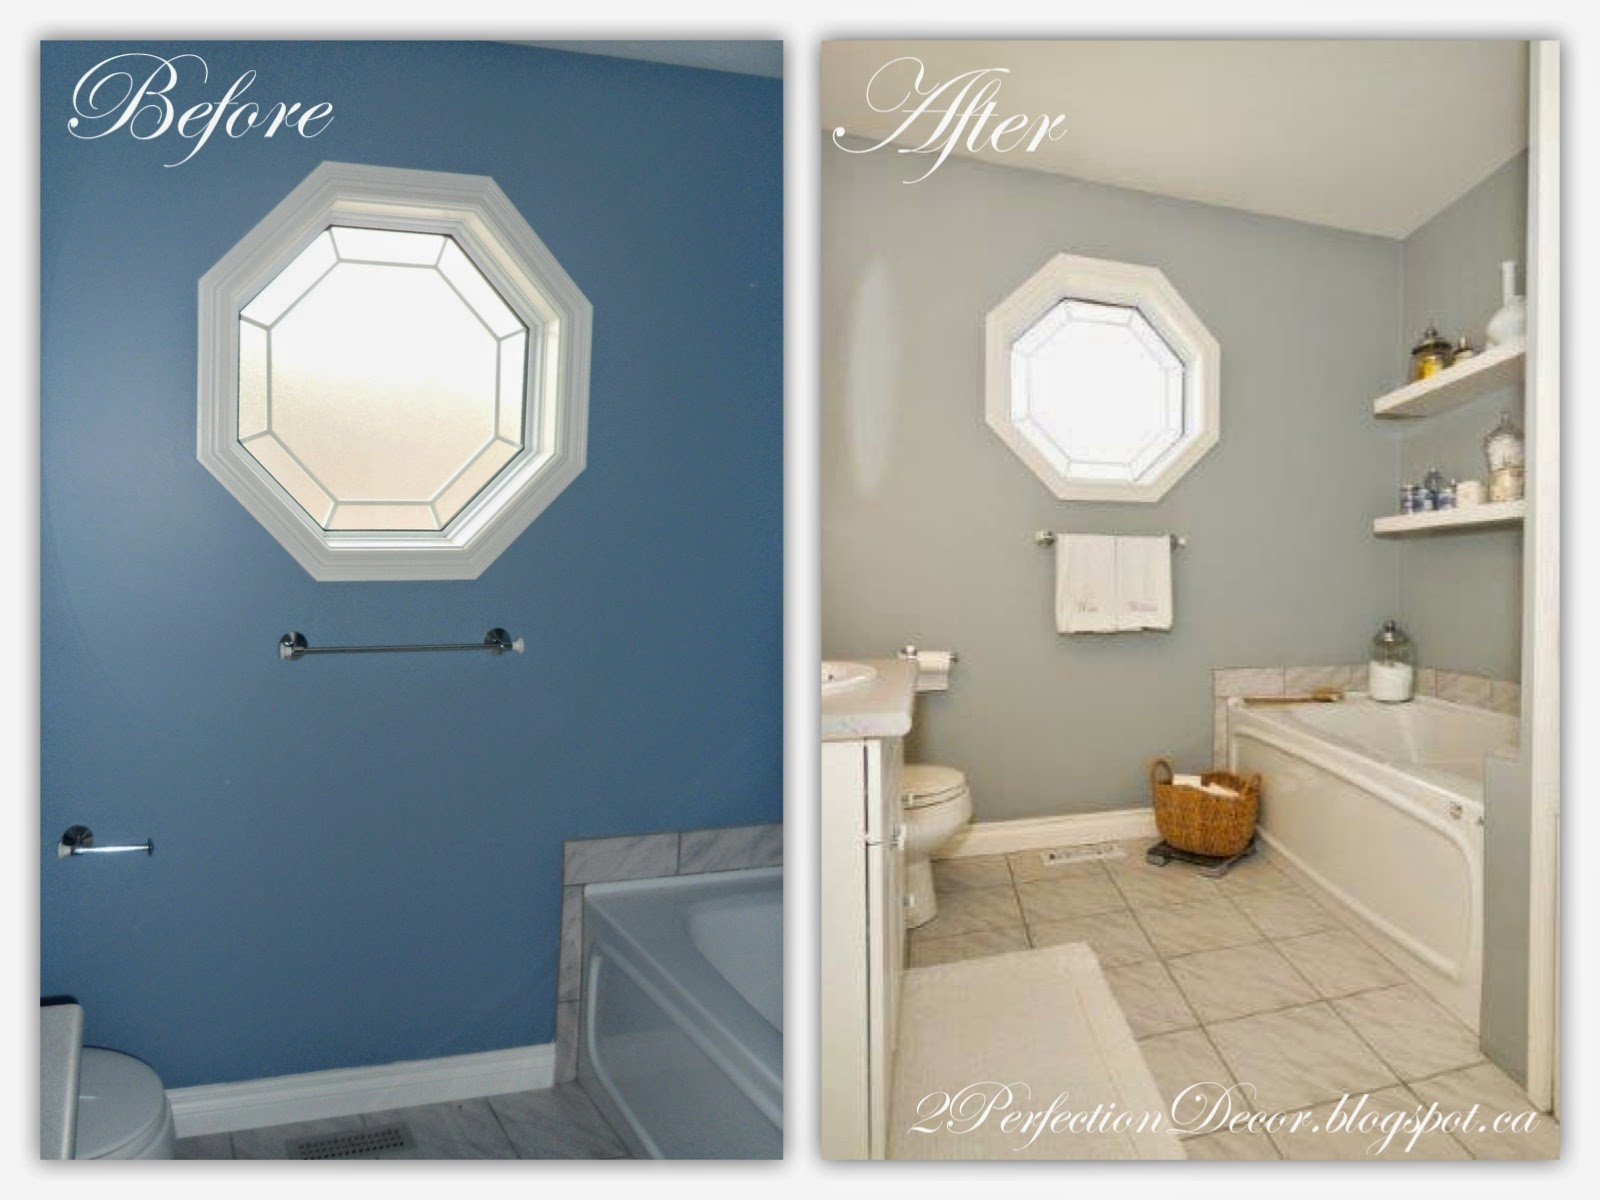 Bathroom Makeover Magazine 2perfection decor: coventry gray & white bathroom makeover